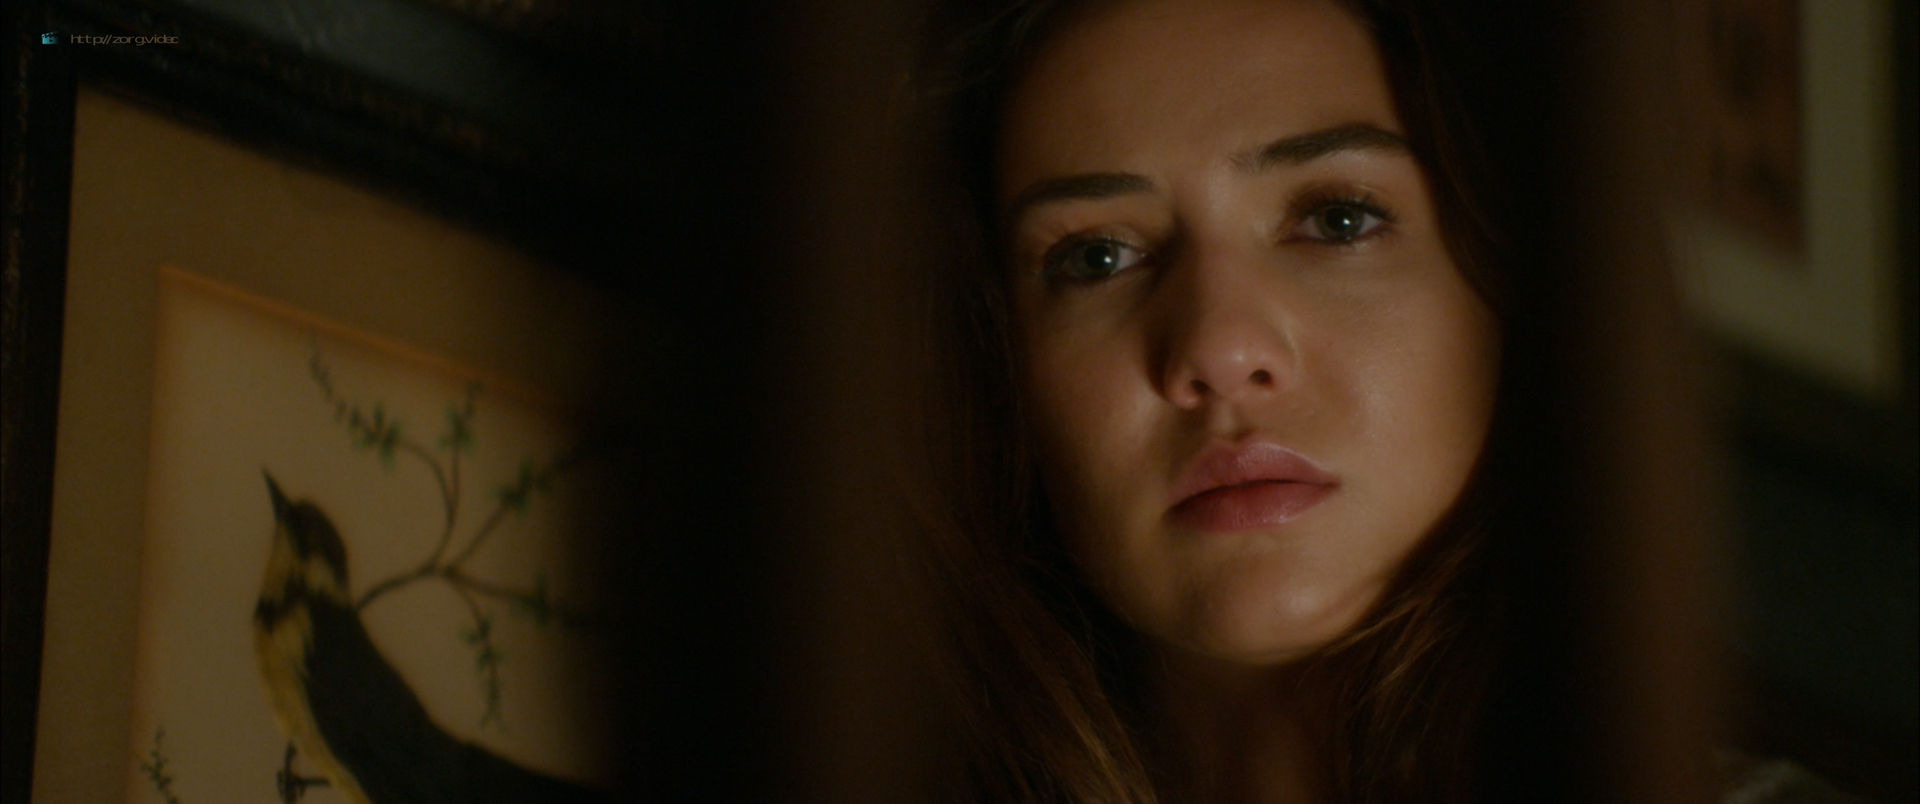 Danielle Campbell hot sexy Paulina Singer hot - Tell Me a Story (2018) s1e-1-5 HD 1080p (15)